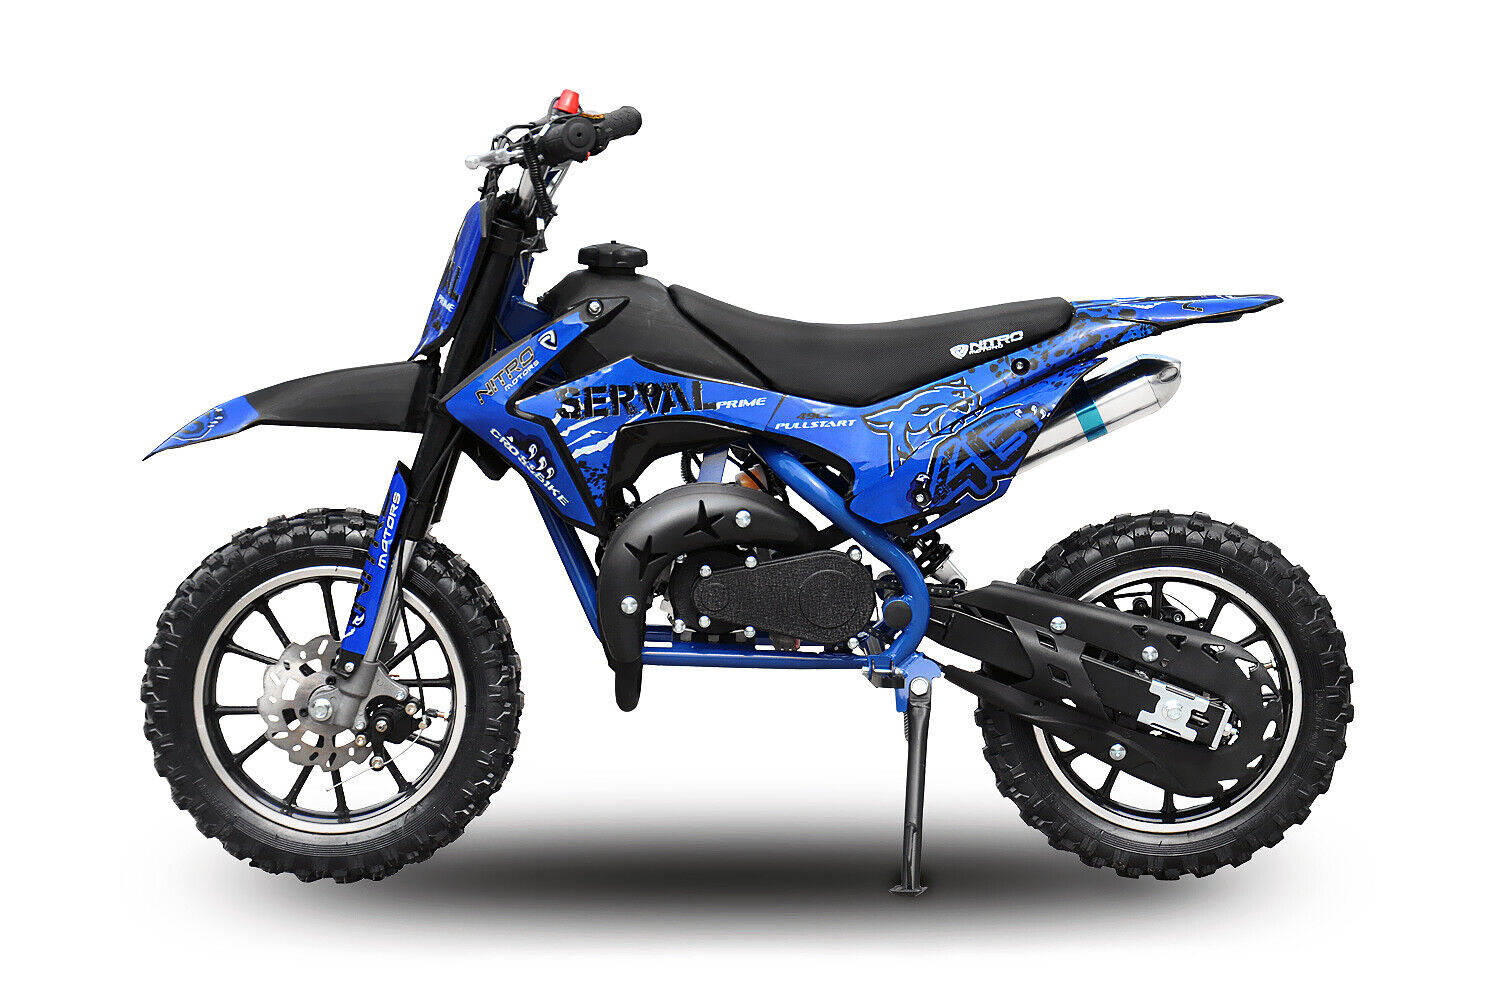 49cc Serval Prime Dirtbike 10/10 Bereifung Cross Bike  49cc Pocket Bike